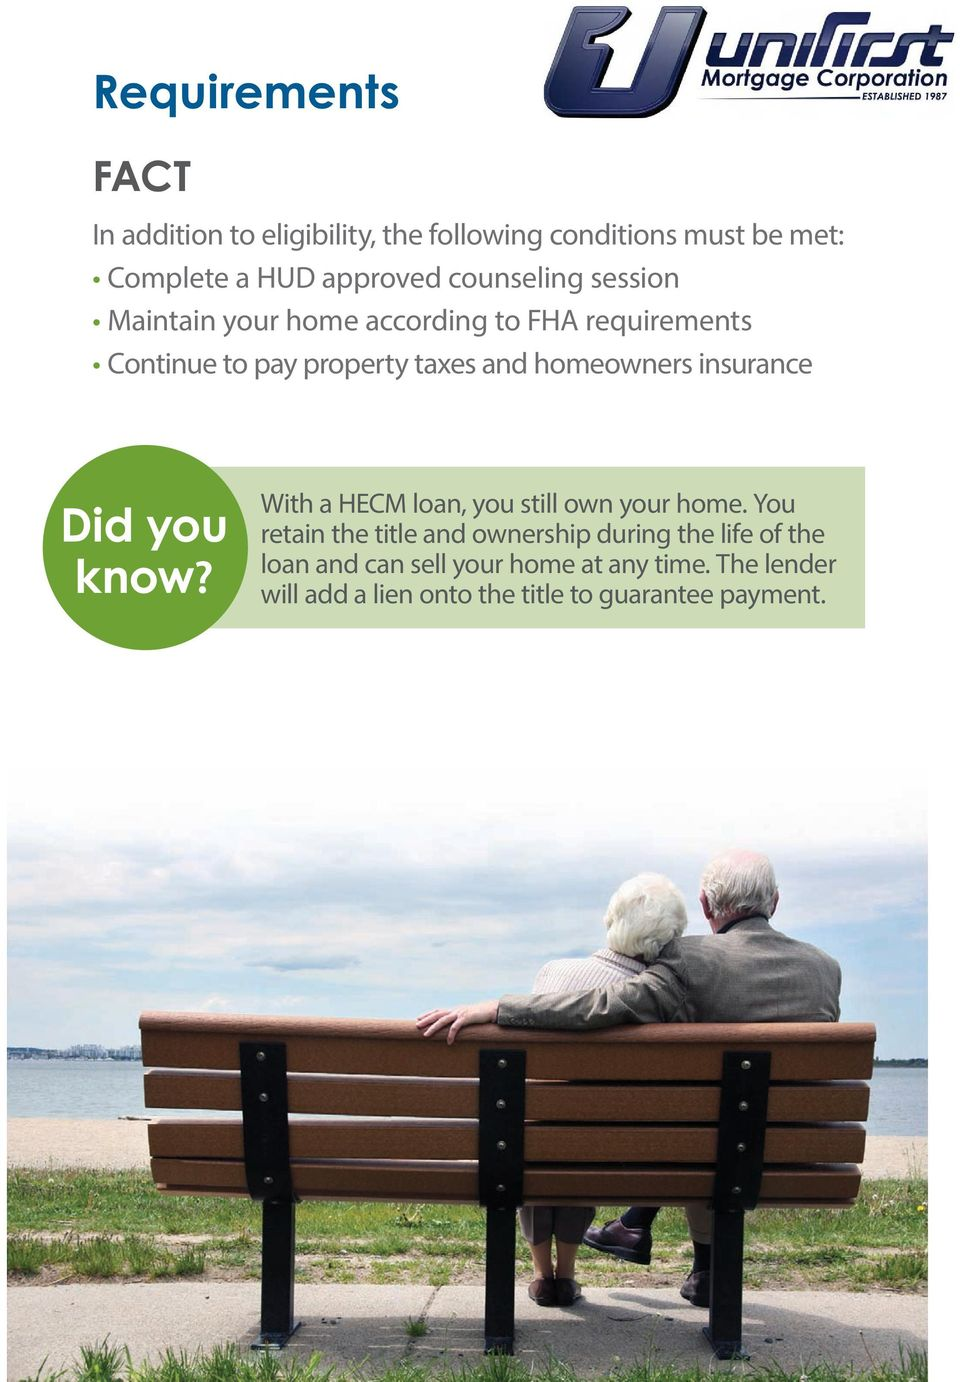 homeowners insurance Did you With a HECM loan, you still own your home.